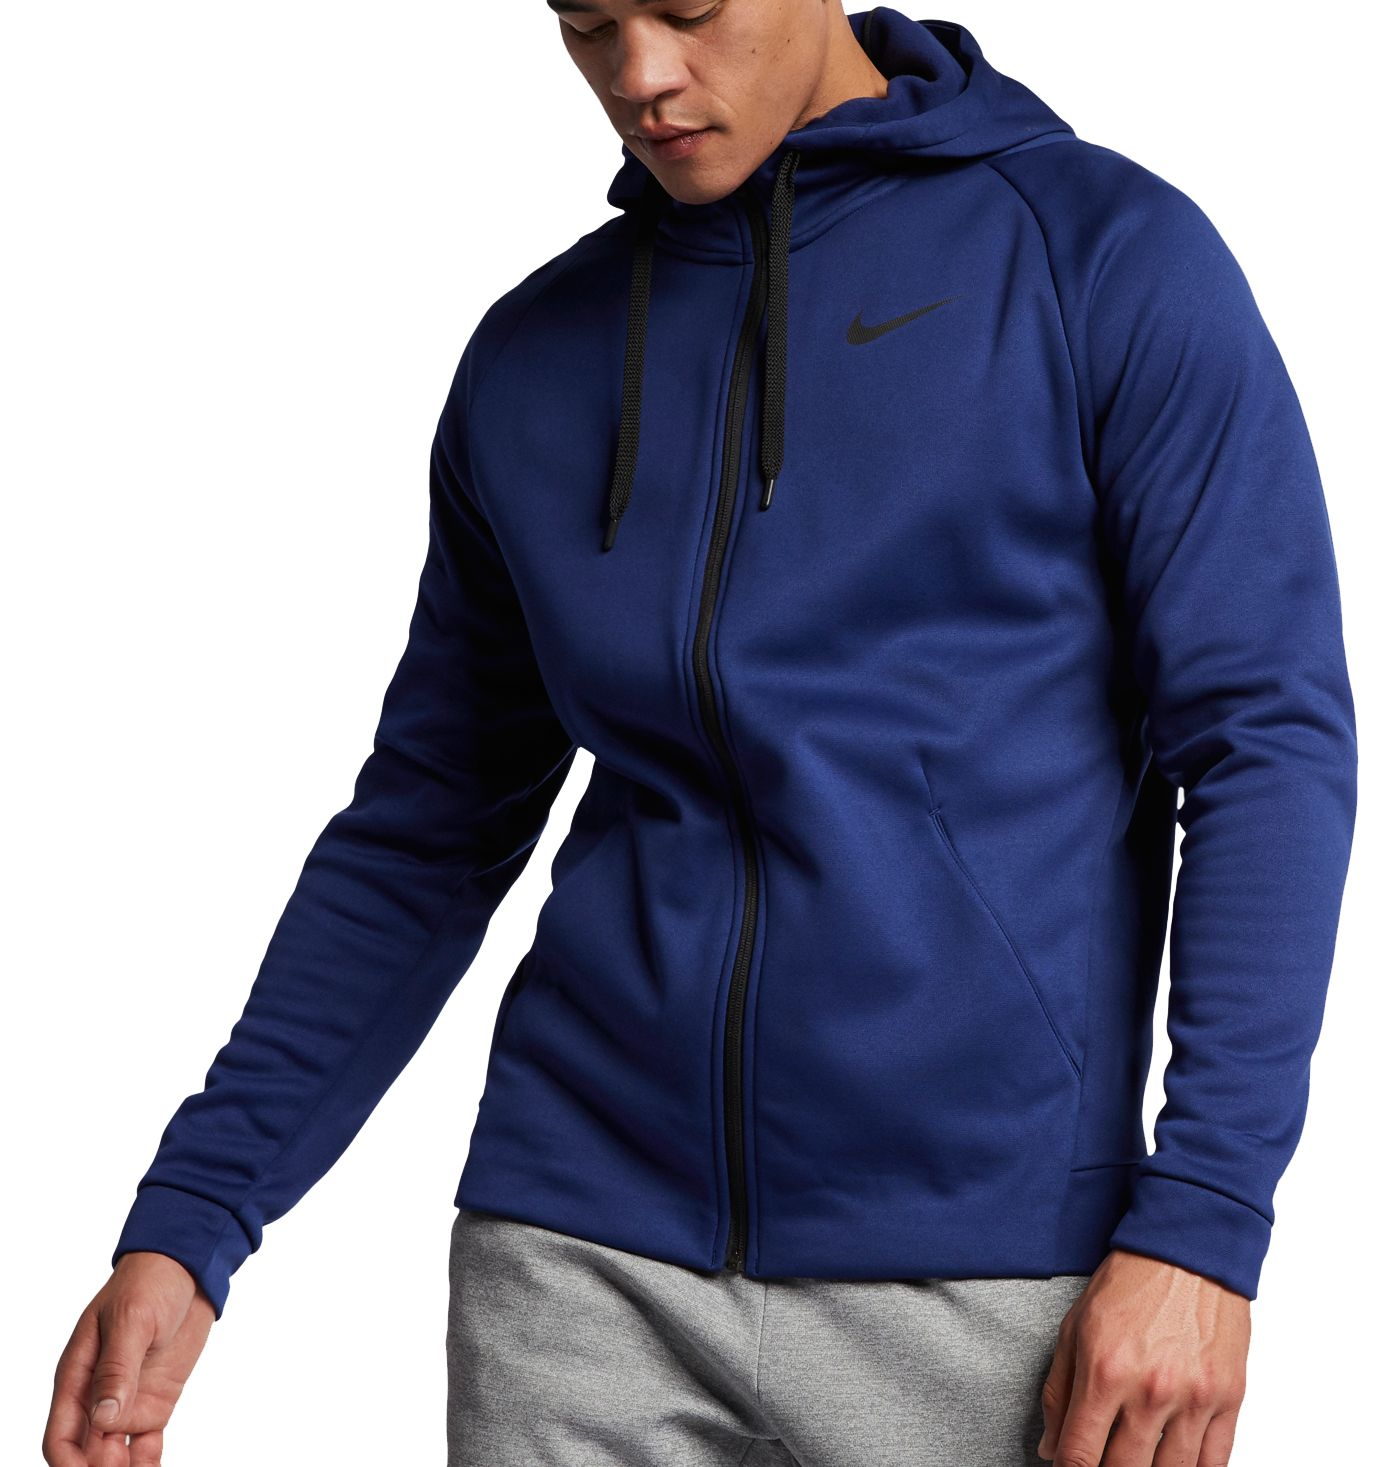 Nike Men's Therma Full Zip Hooded Jacket (Regular and Big & Tall)